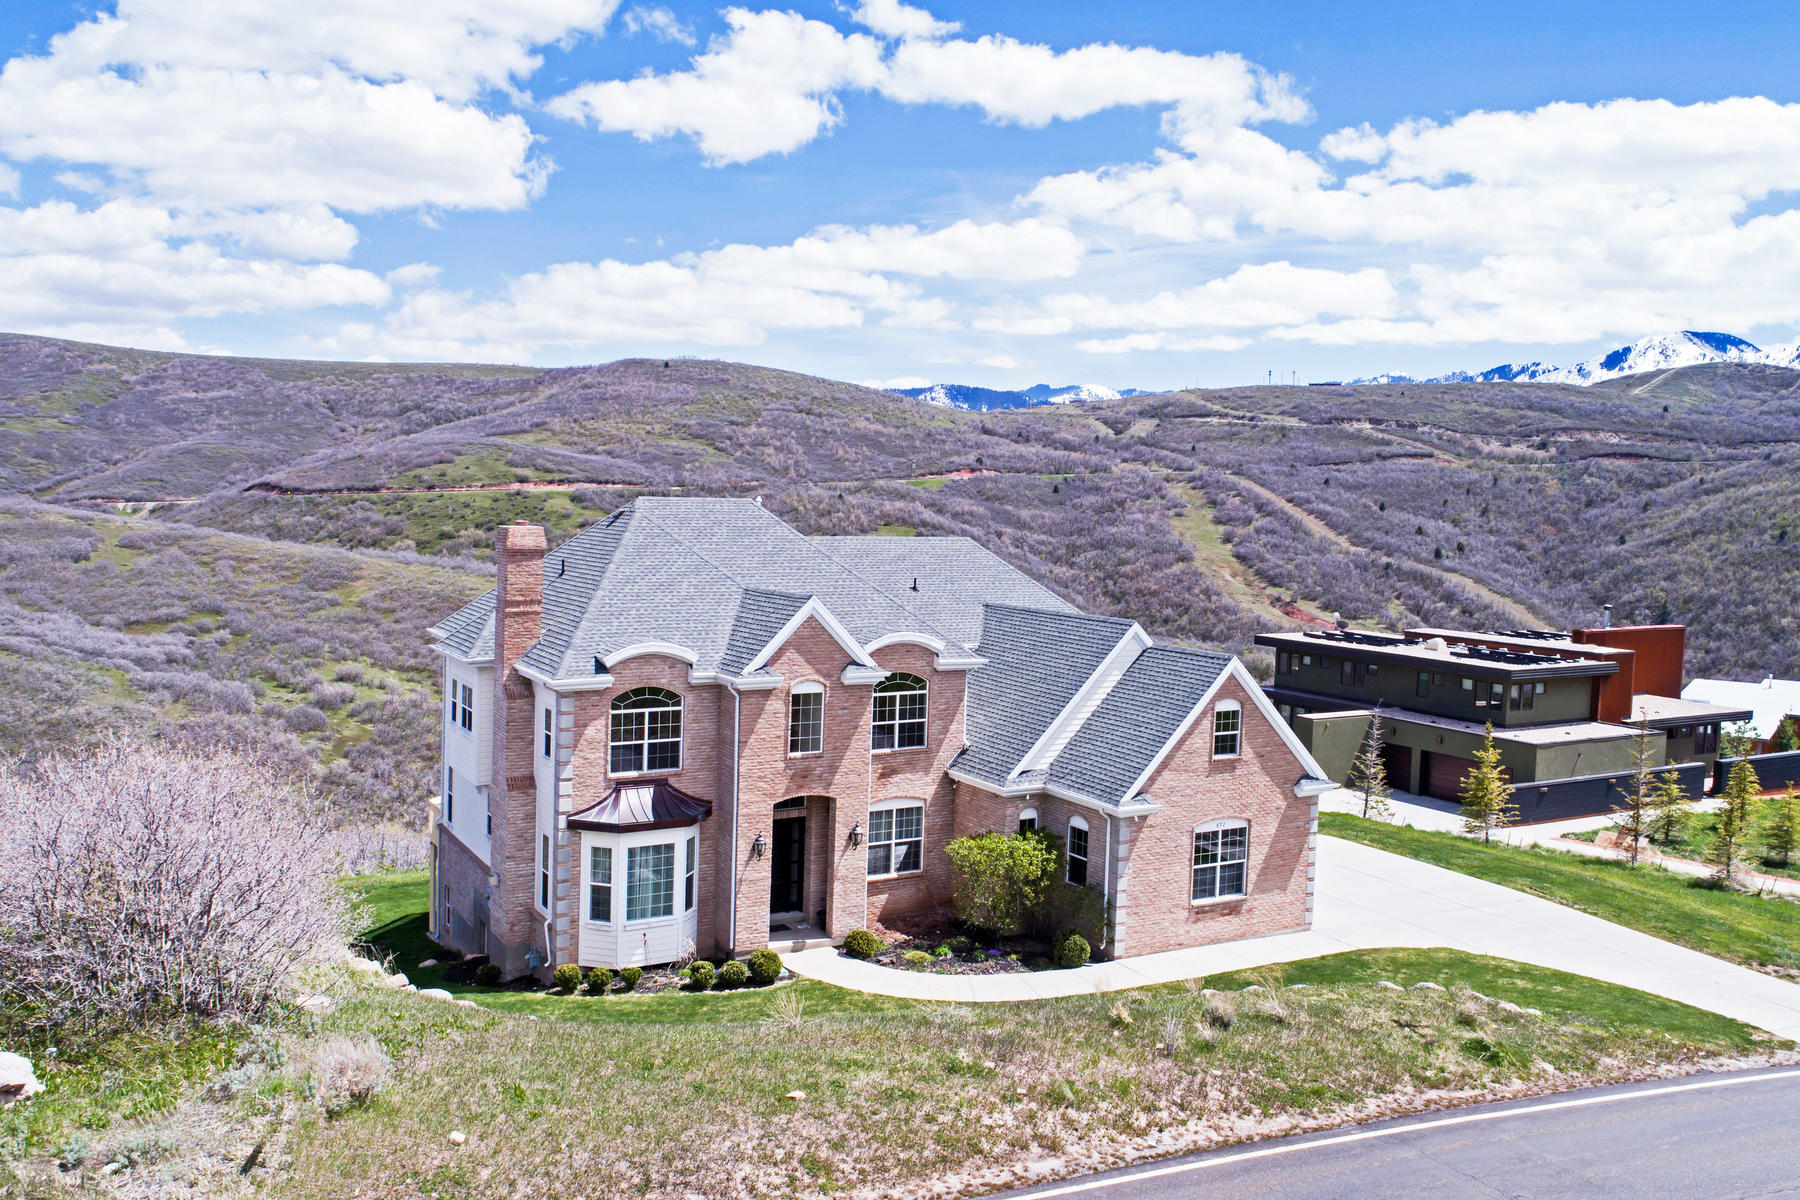 Moradia para Venda às Stately Two-Story Home With Sweeping Views 672 N Pioneer Fork Rd Salt Lake City, Utah, 84108 Estados Unidos